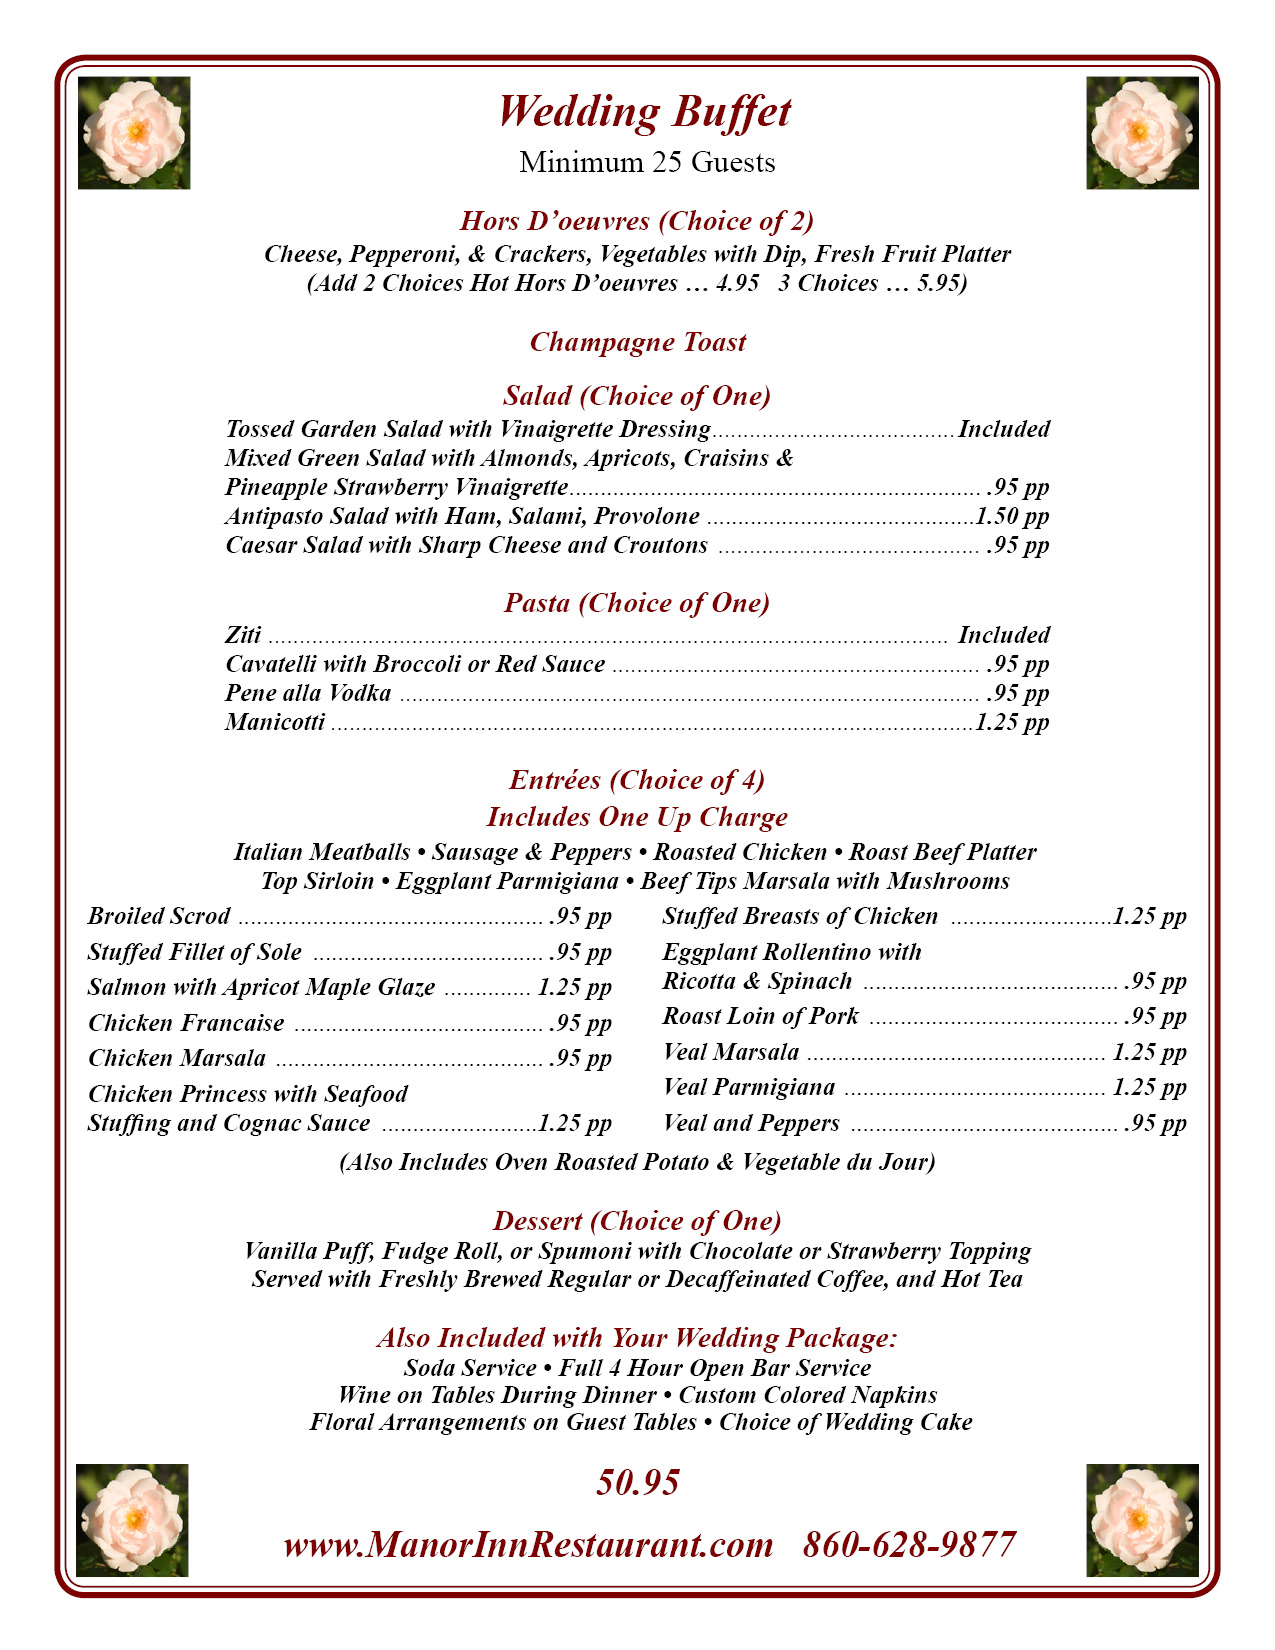 Manor Inn wedding buffet menu